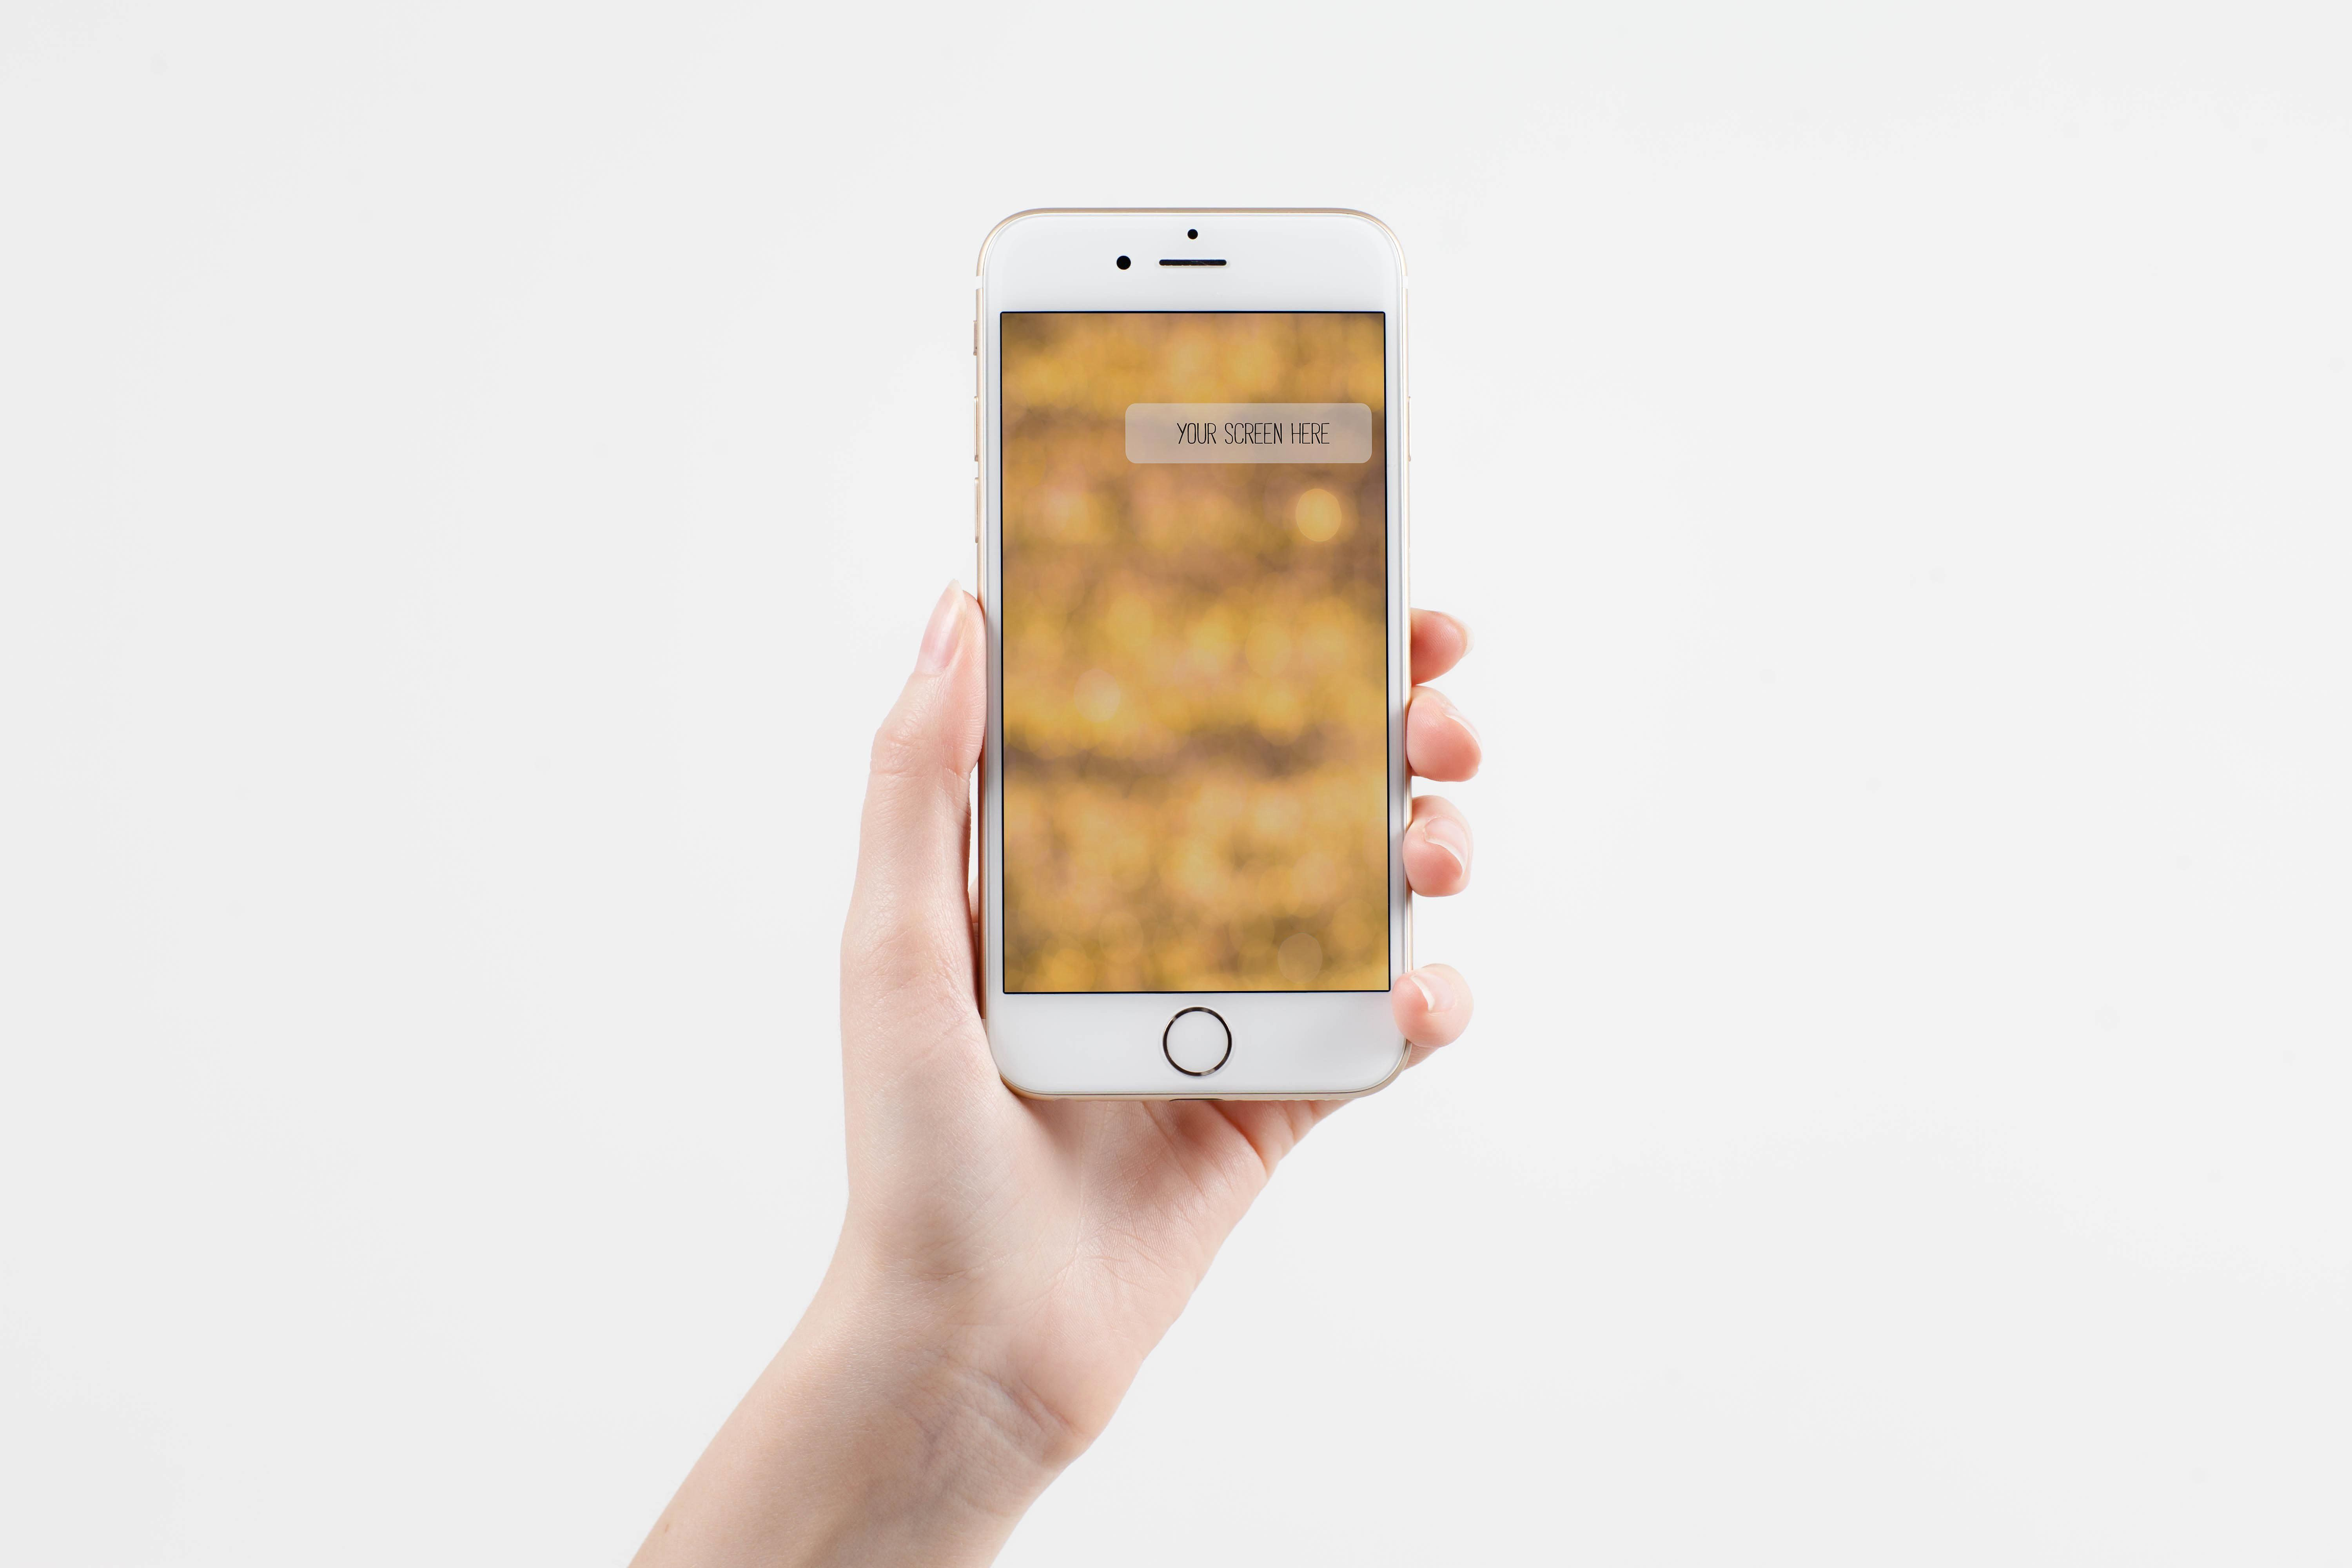 Download Female Hand Holding Iphone Iphone Iphone Mockup Graphic Design Typography